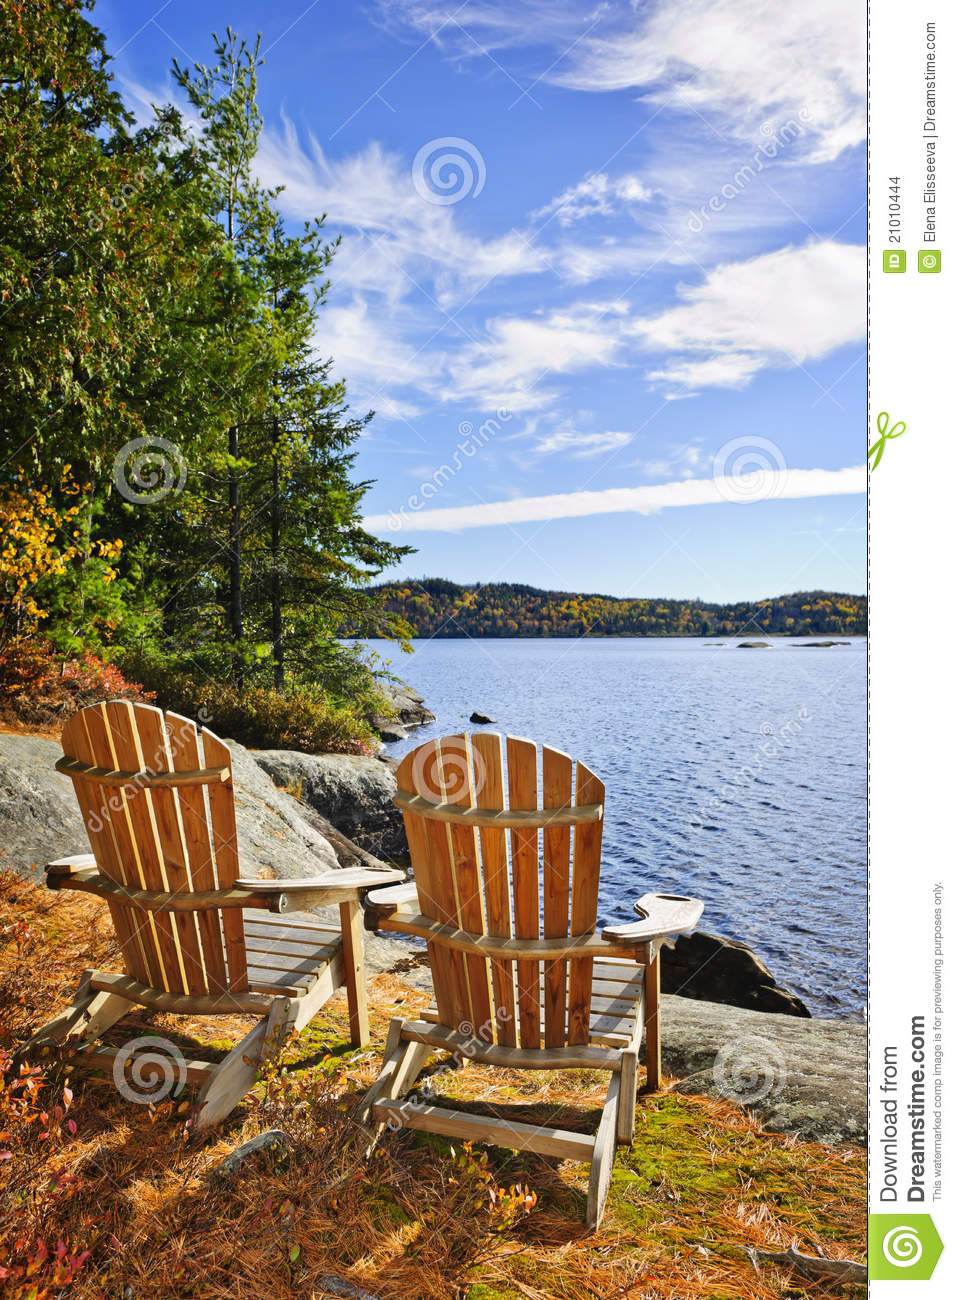 adirondack chairs lake shore